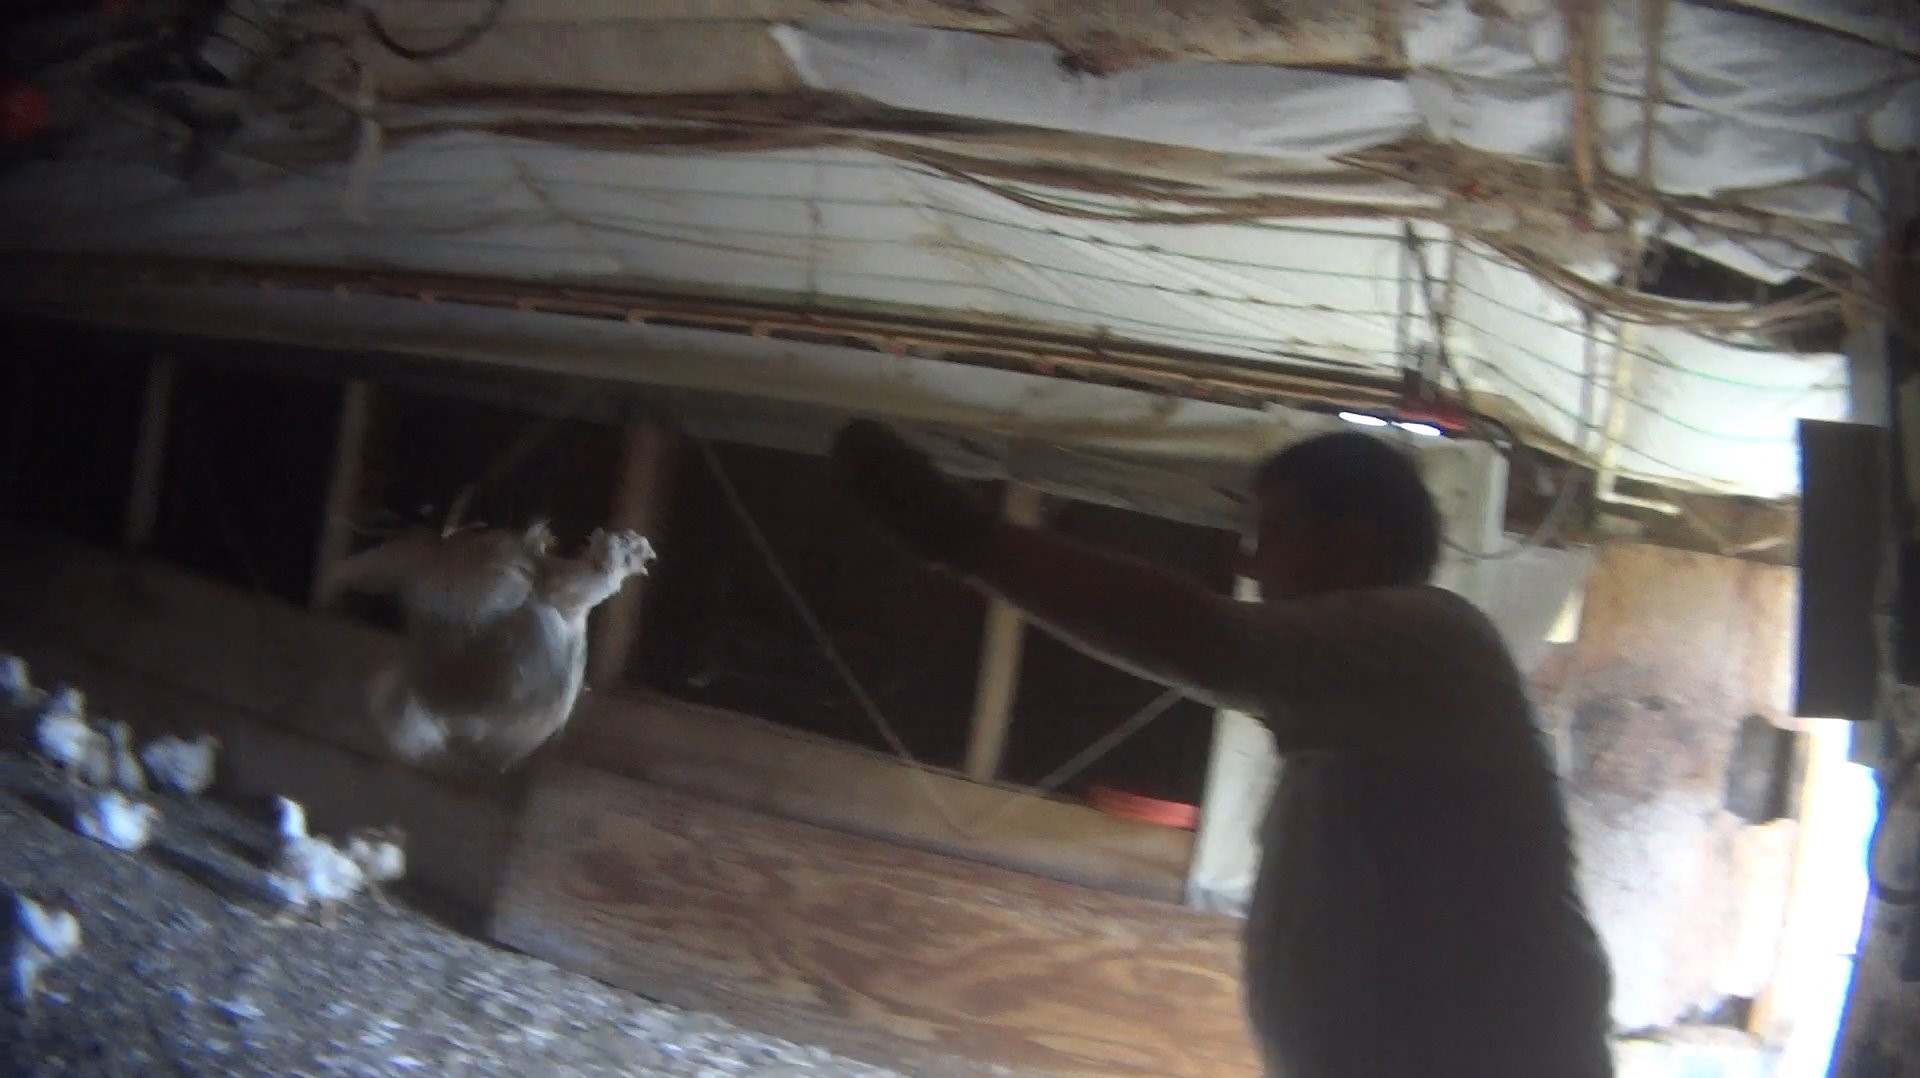 Undercover video shows alleged abuse at local chicken farm ...